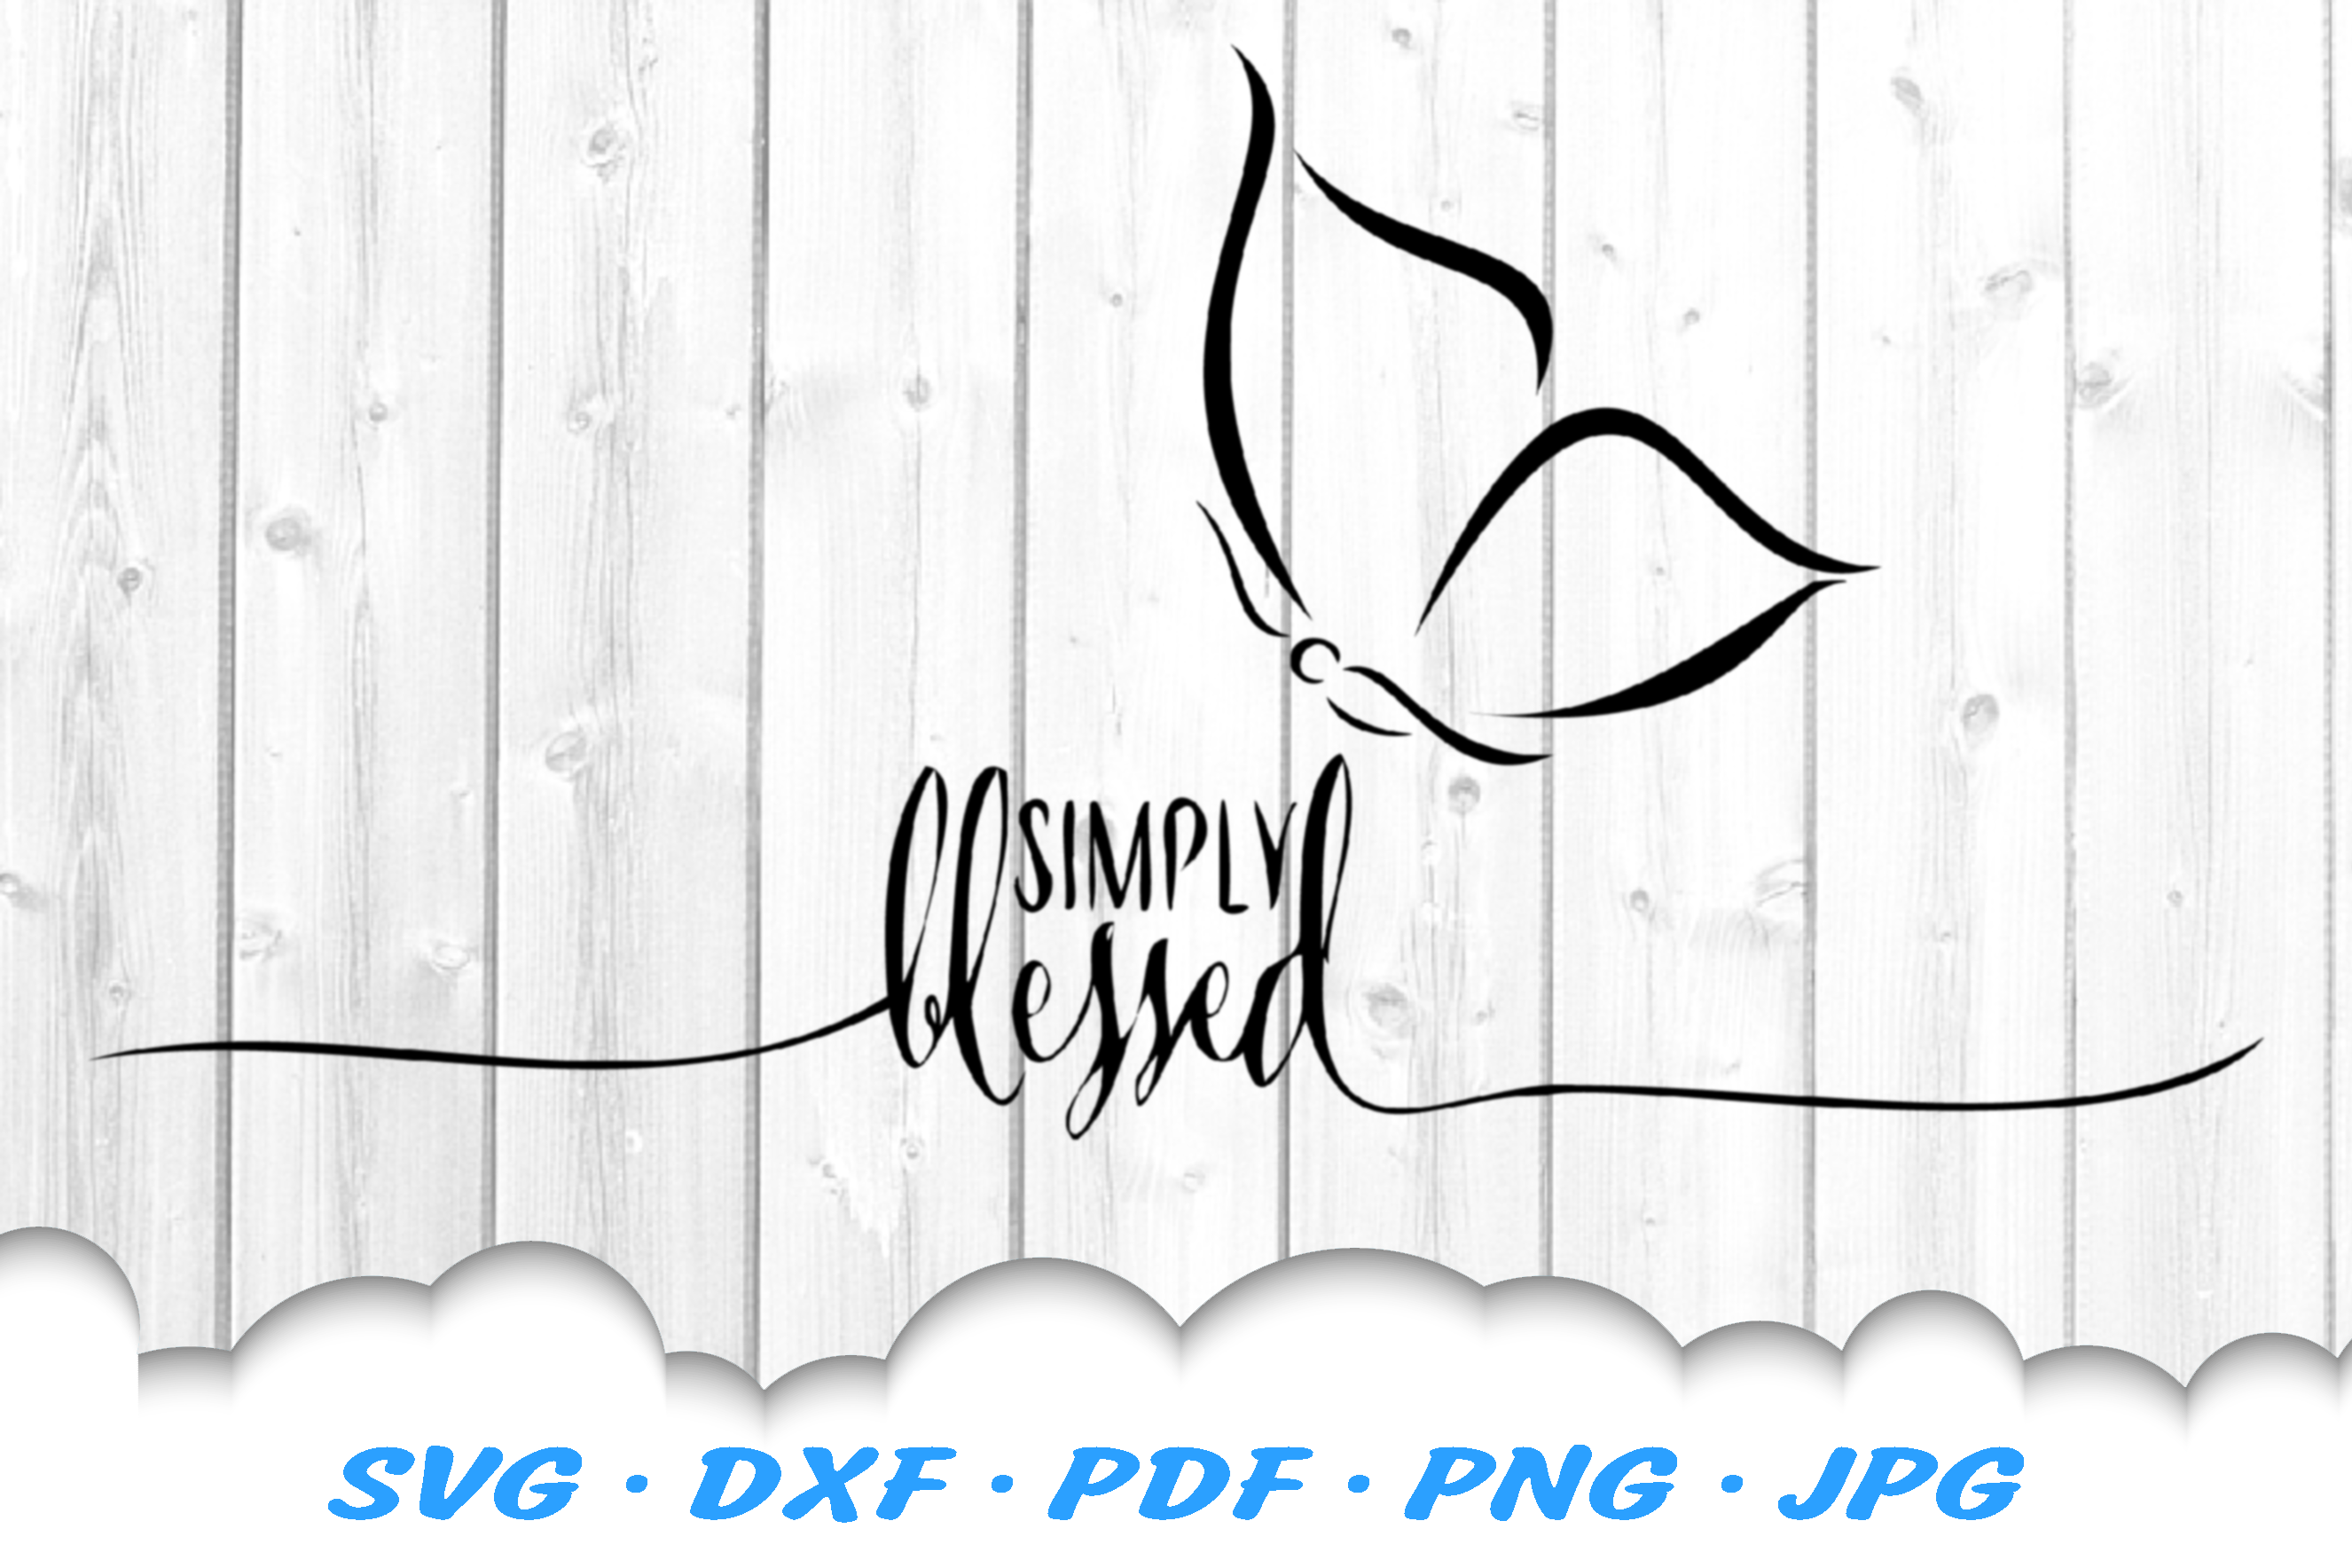 Simply Blessed Butterfly SVG DXF Cut Files example image 2